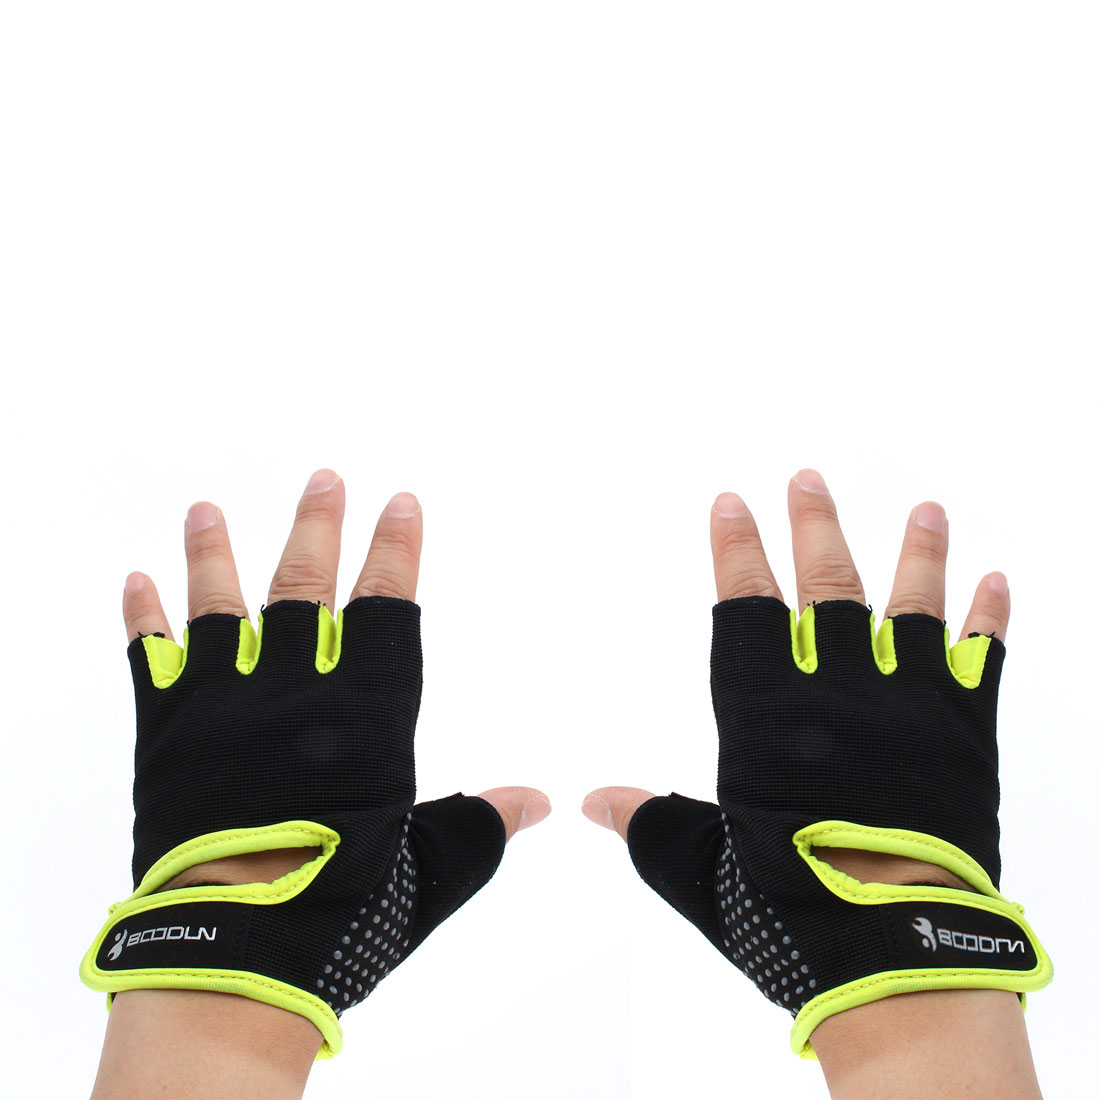 BOODUN Authorized Gym Workout Weight Lifting Training Adjustable Anti Slip Breathable Fitness Half Finger Gloves Yellow S Size Pair